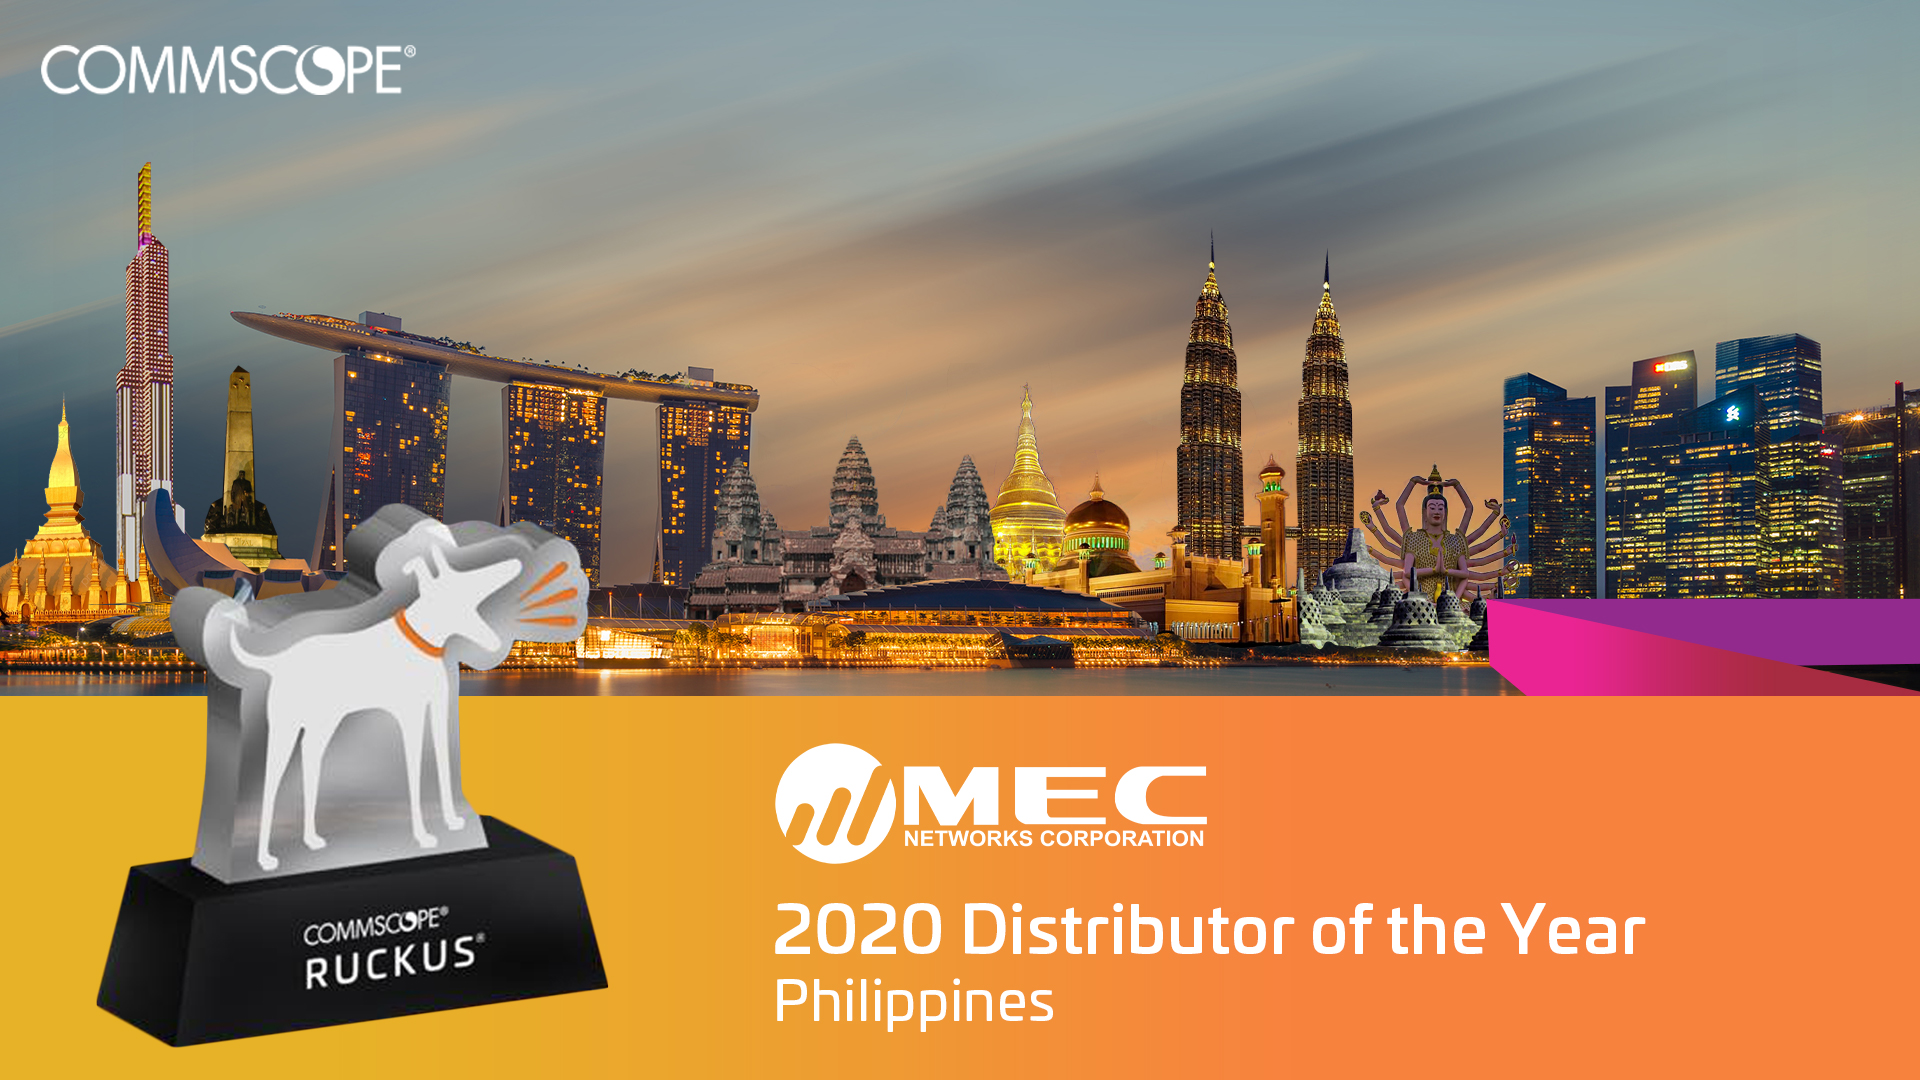 MEC Named as CommScope RUCKUS' 2020 Distributor of the Year